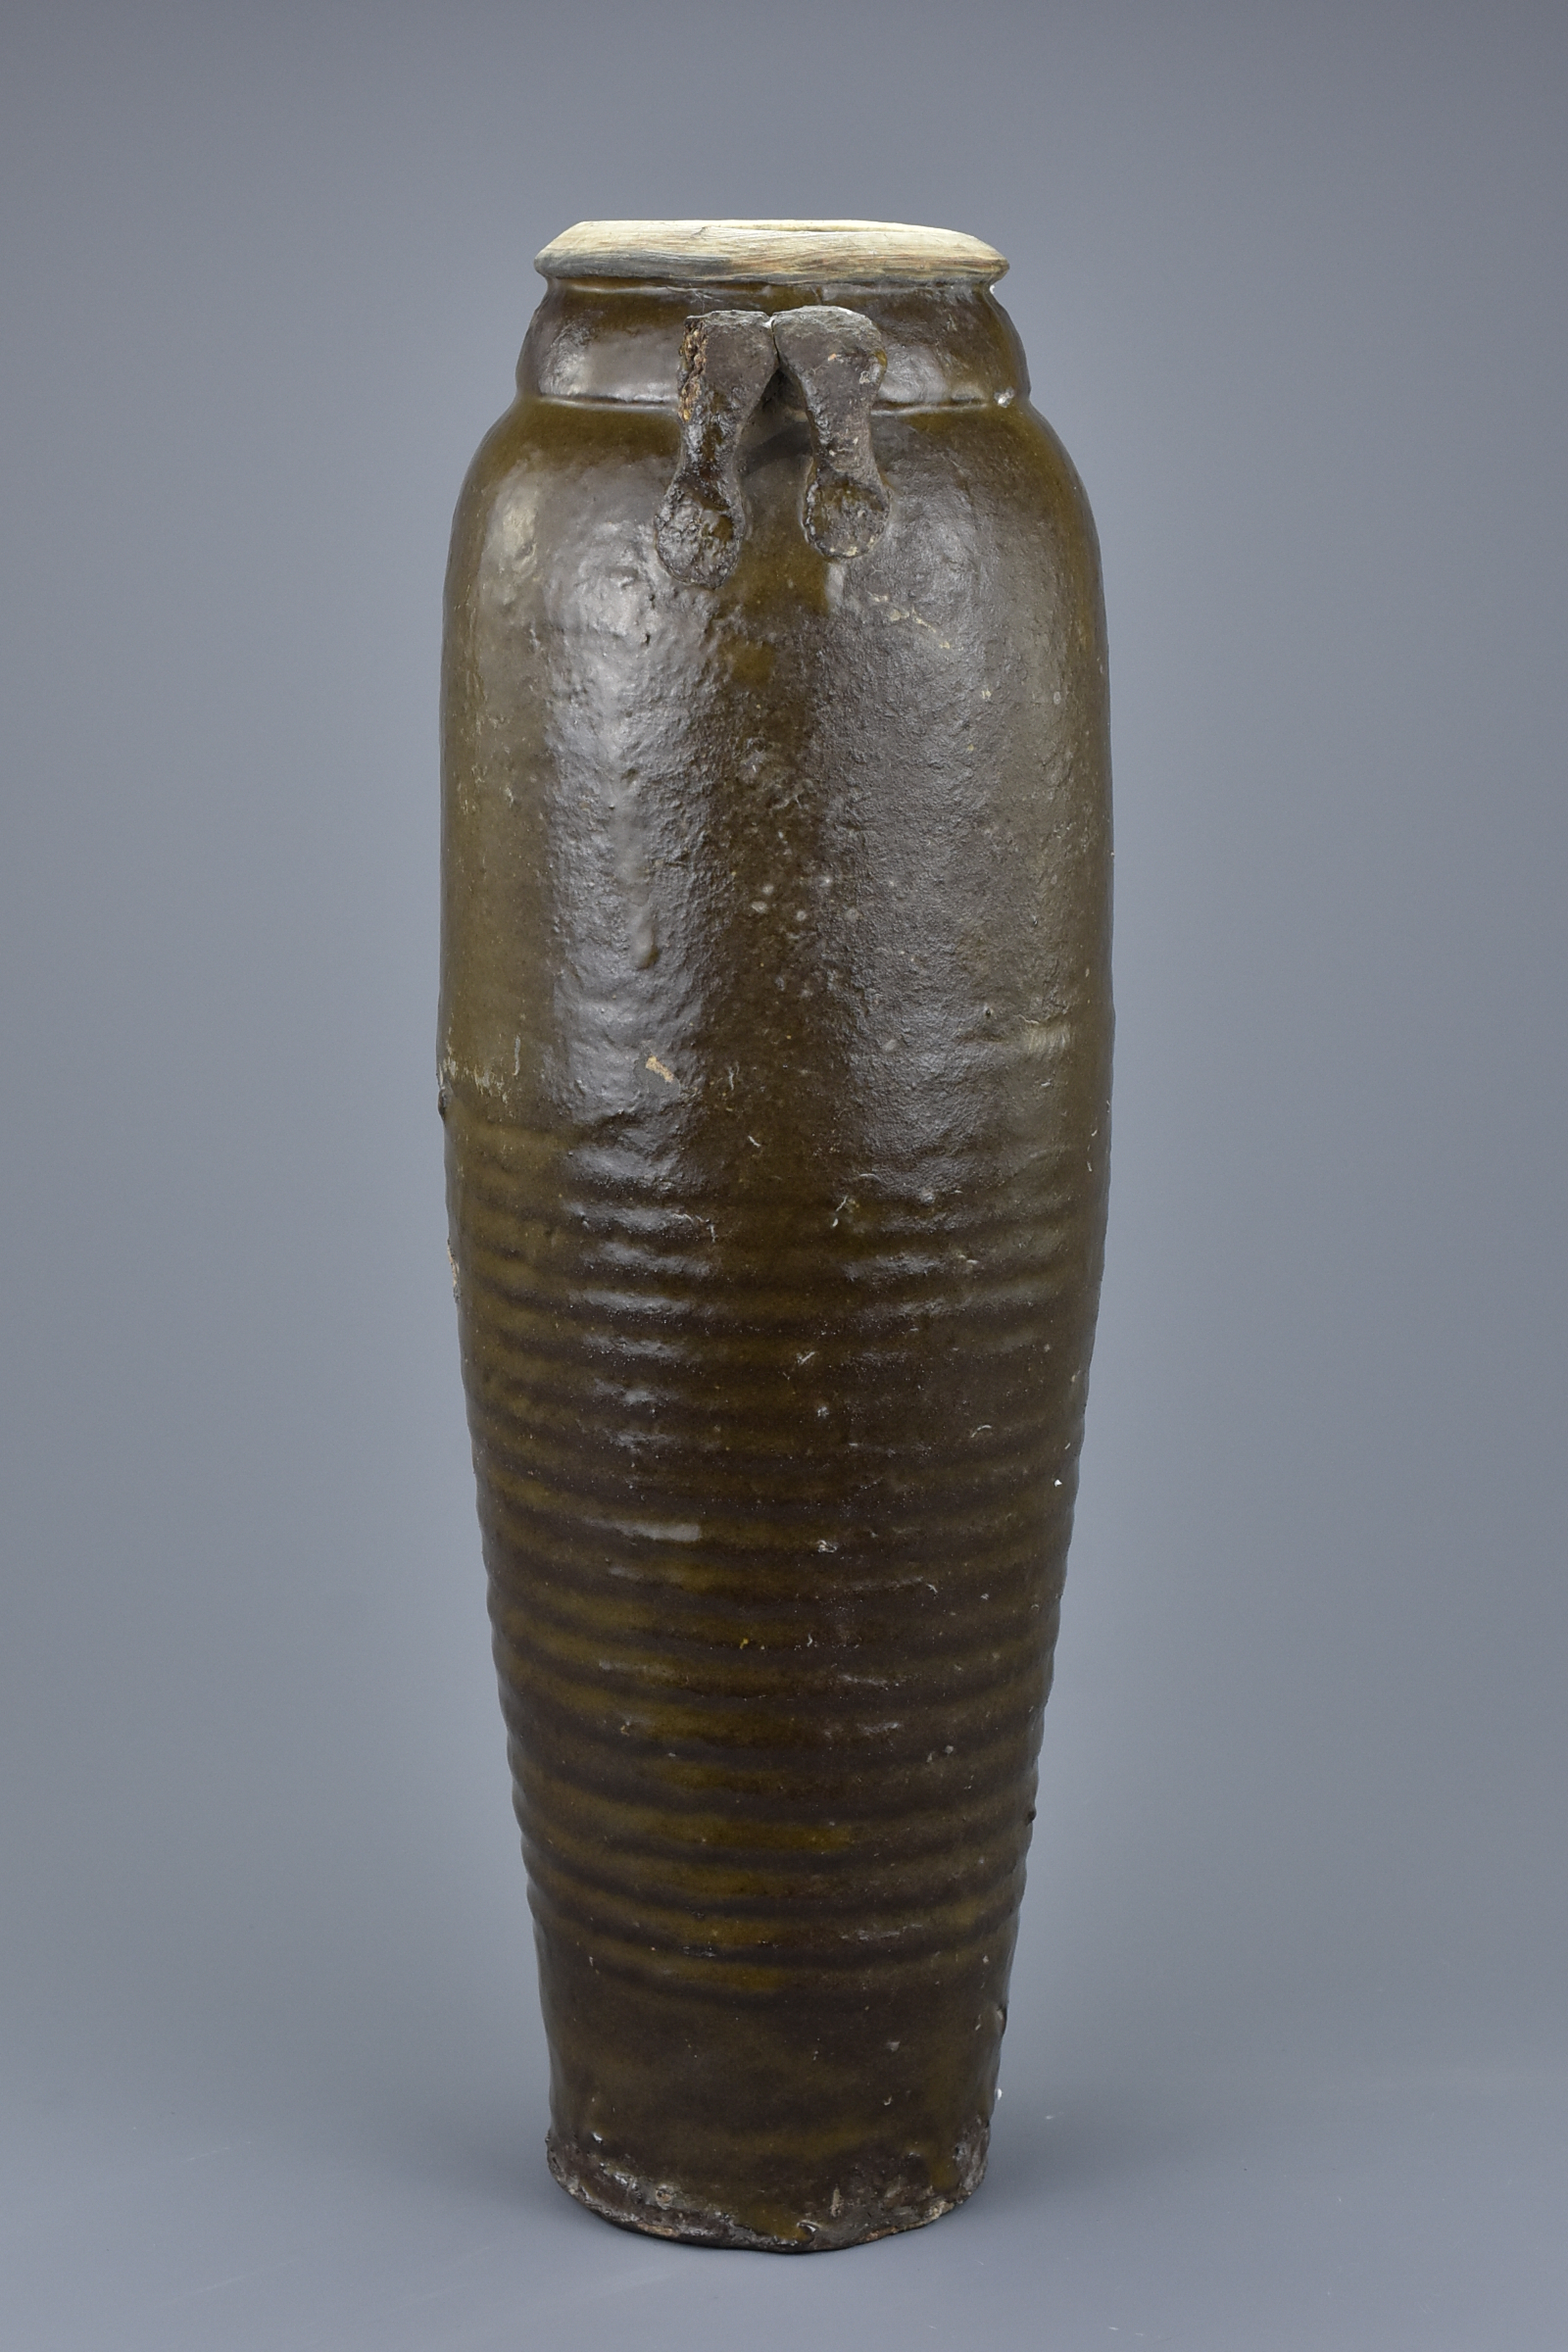 Lot 31 - A Rare Tall Chinese Northern Song or Liao Dynasty Glazed Stoneware Bottle